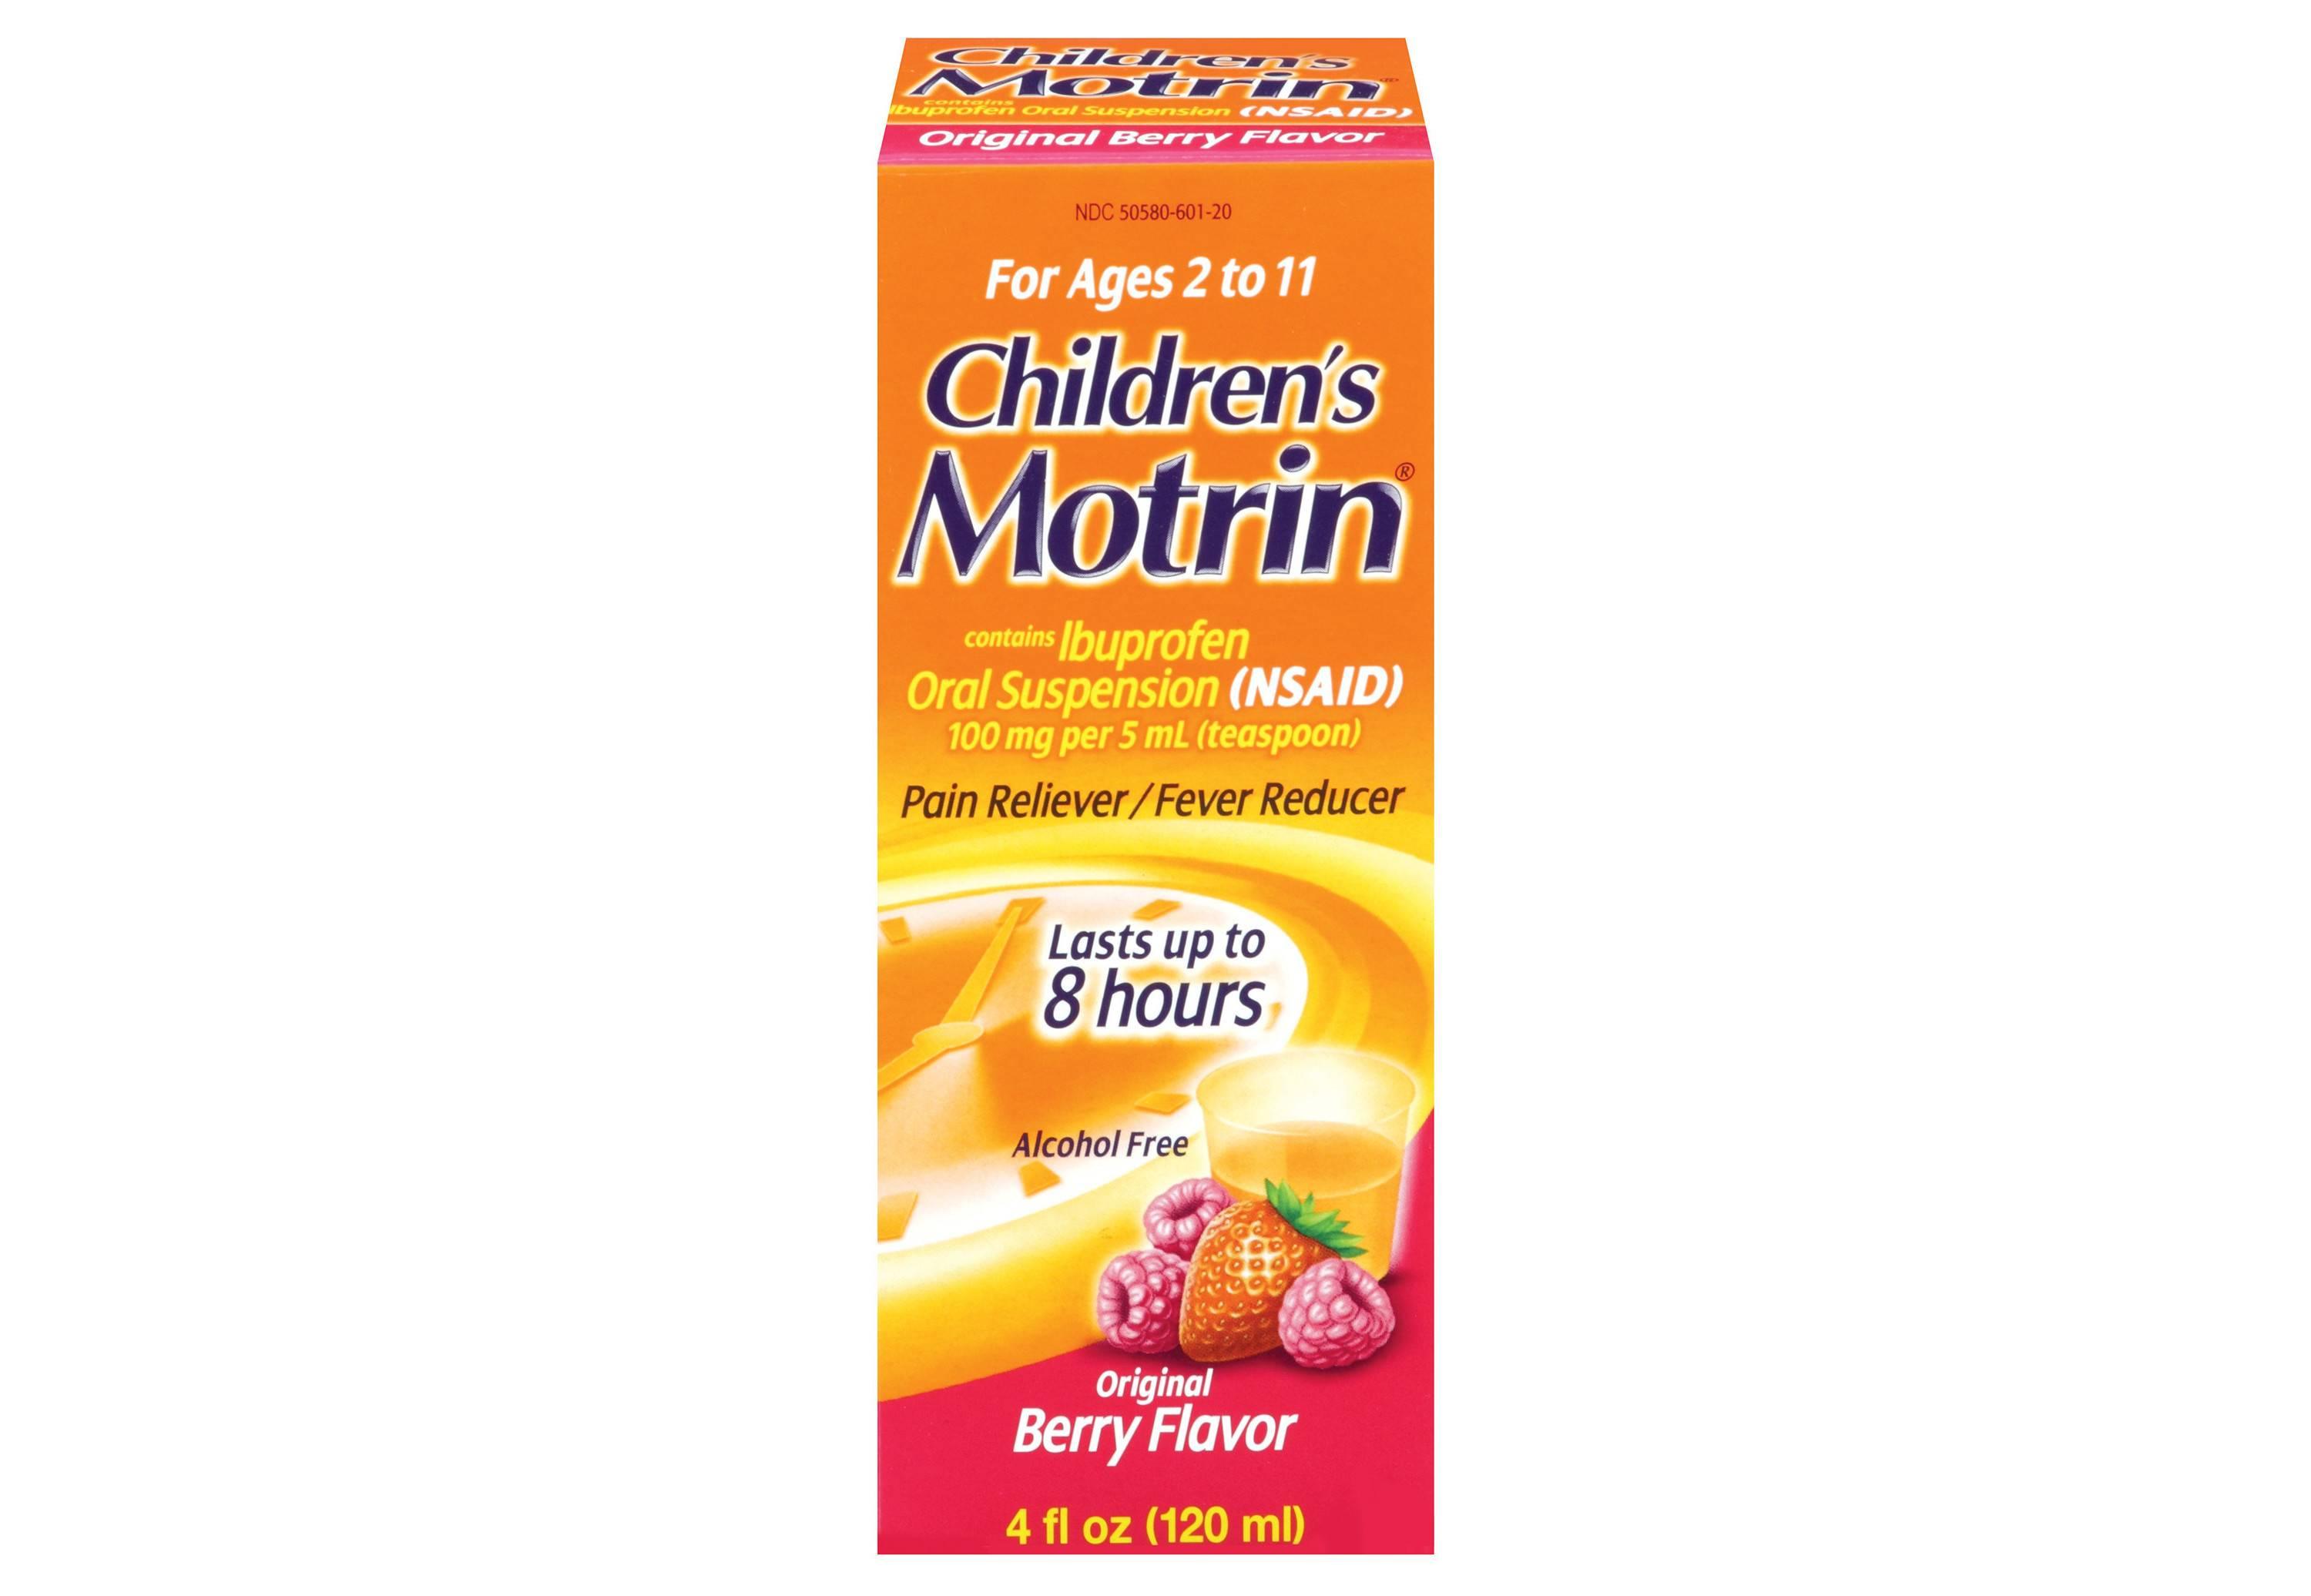 Children's motrin